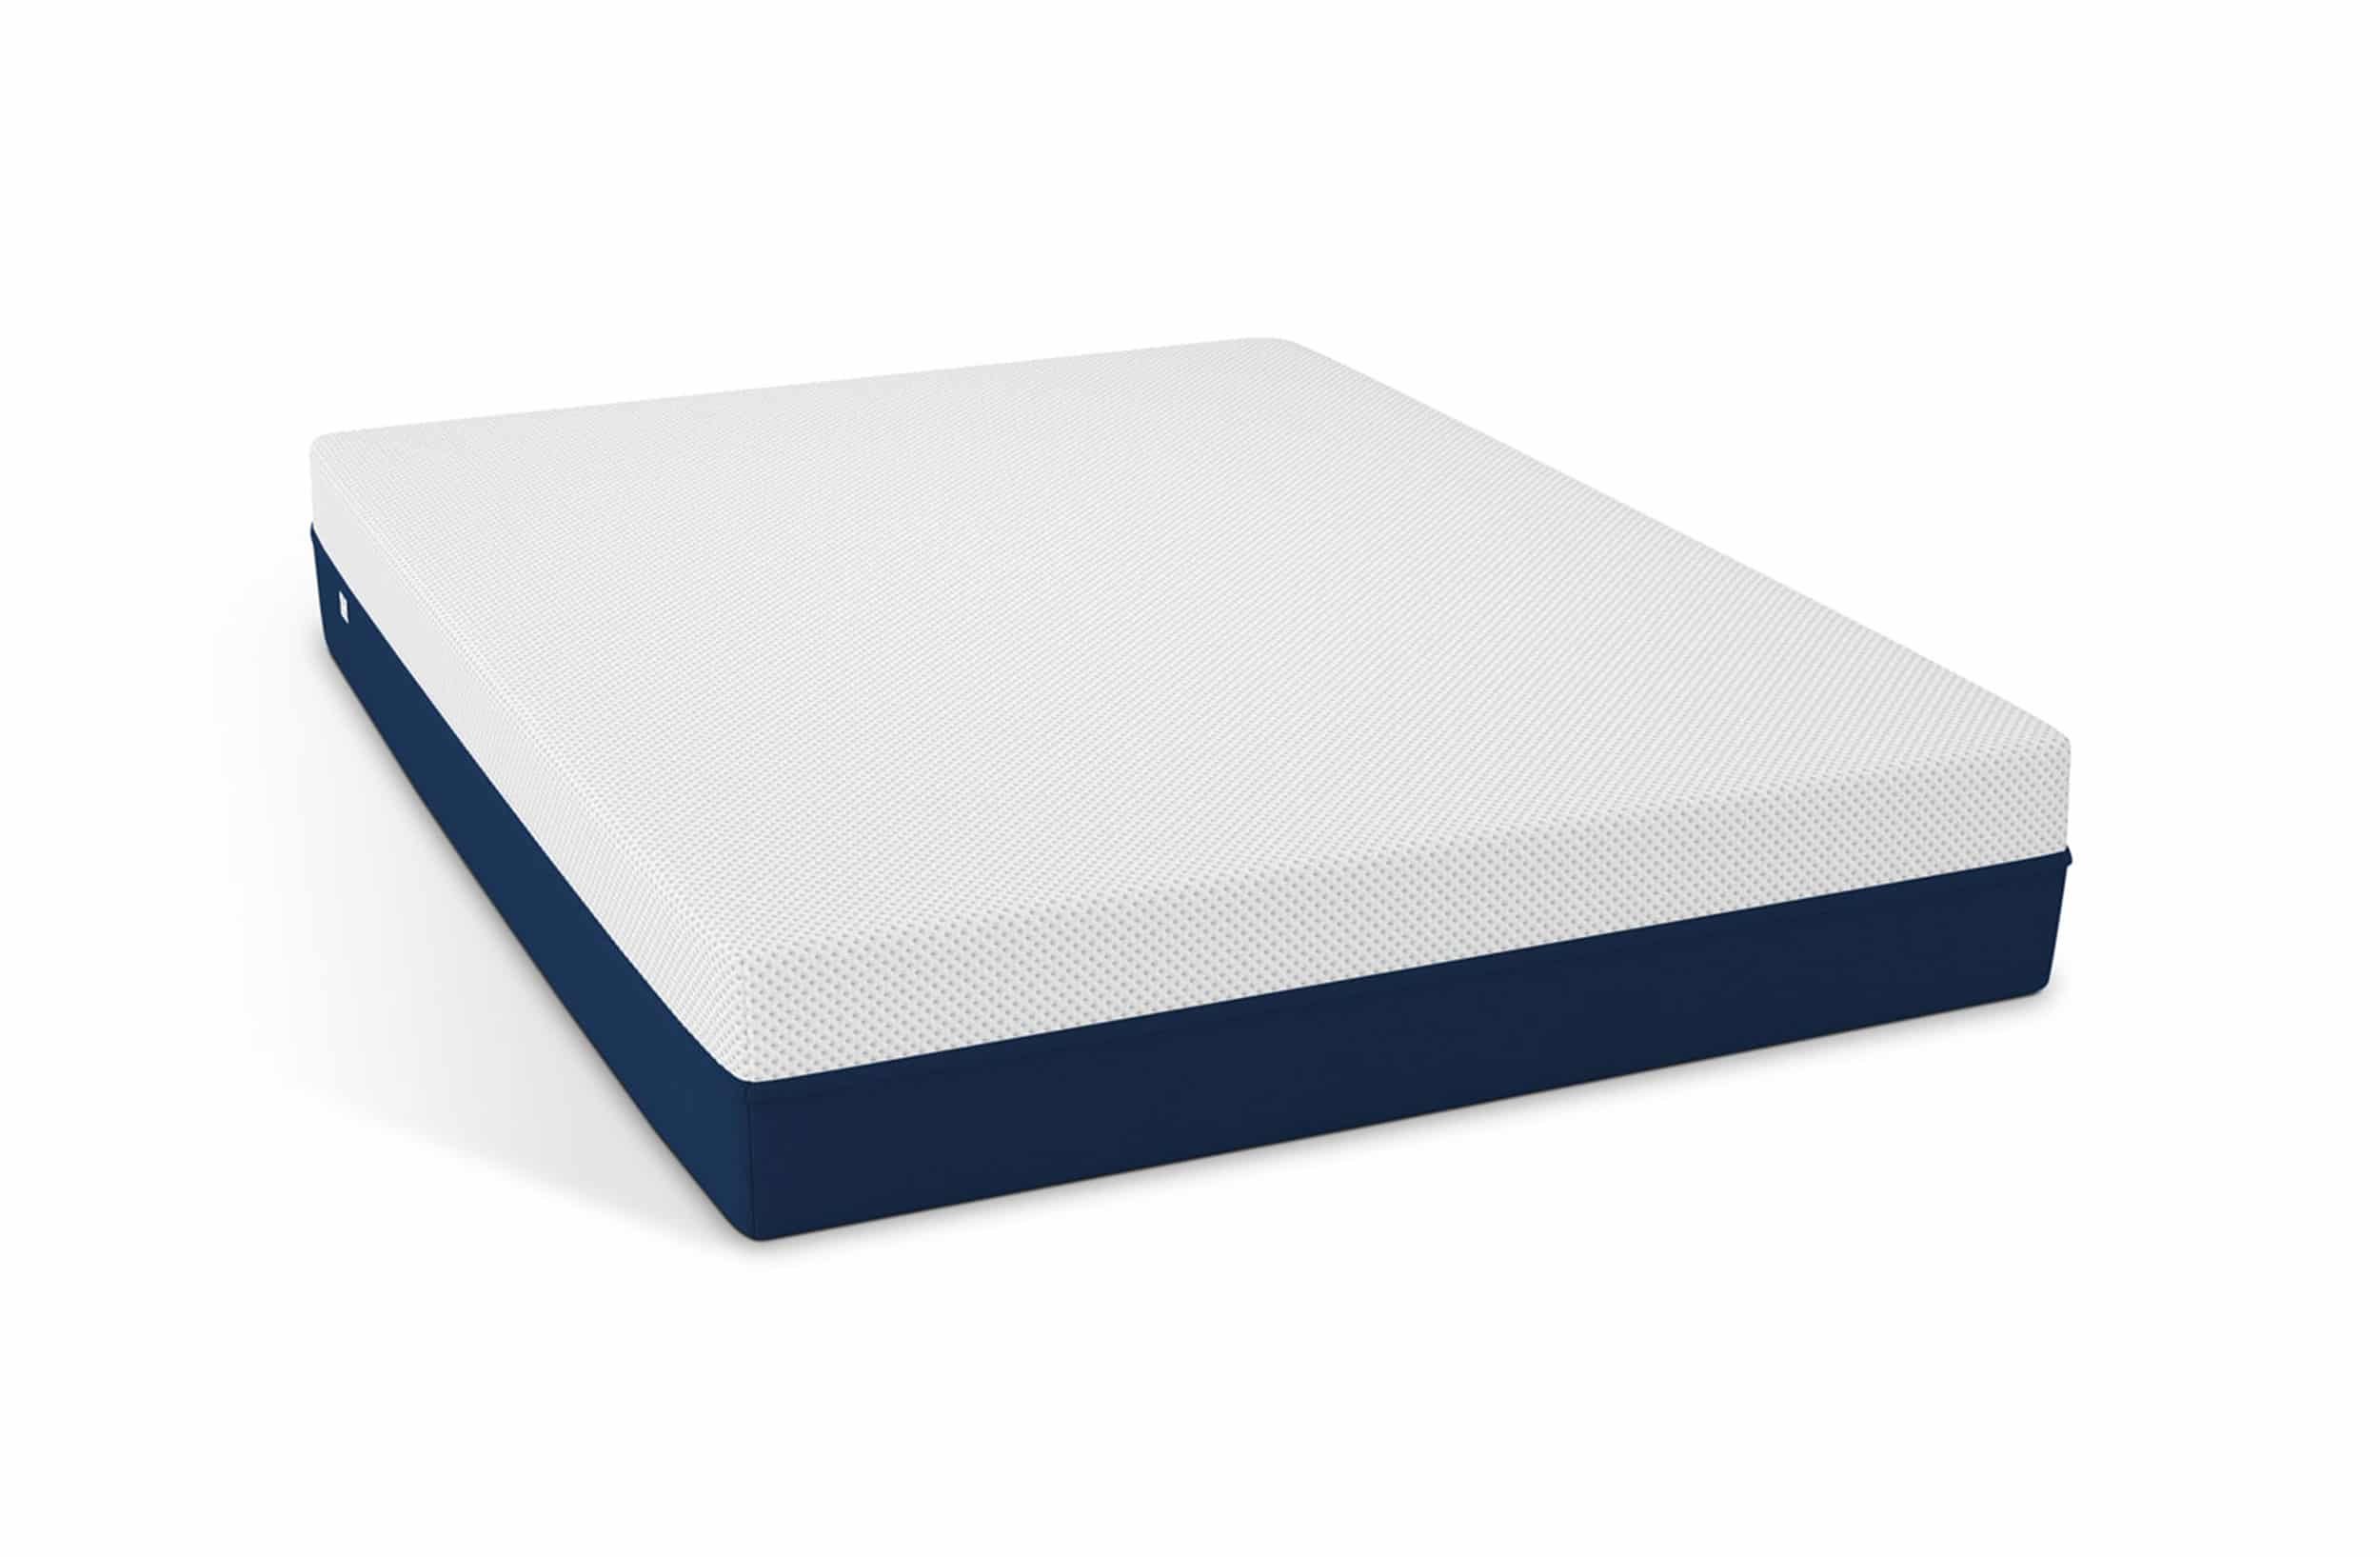 online store 92563 9c0a3 Most Comfortable Mattress of 2019: Reviews and Buyer's Guide ...